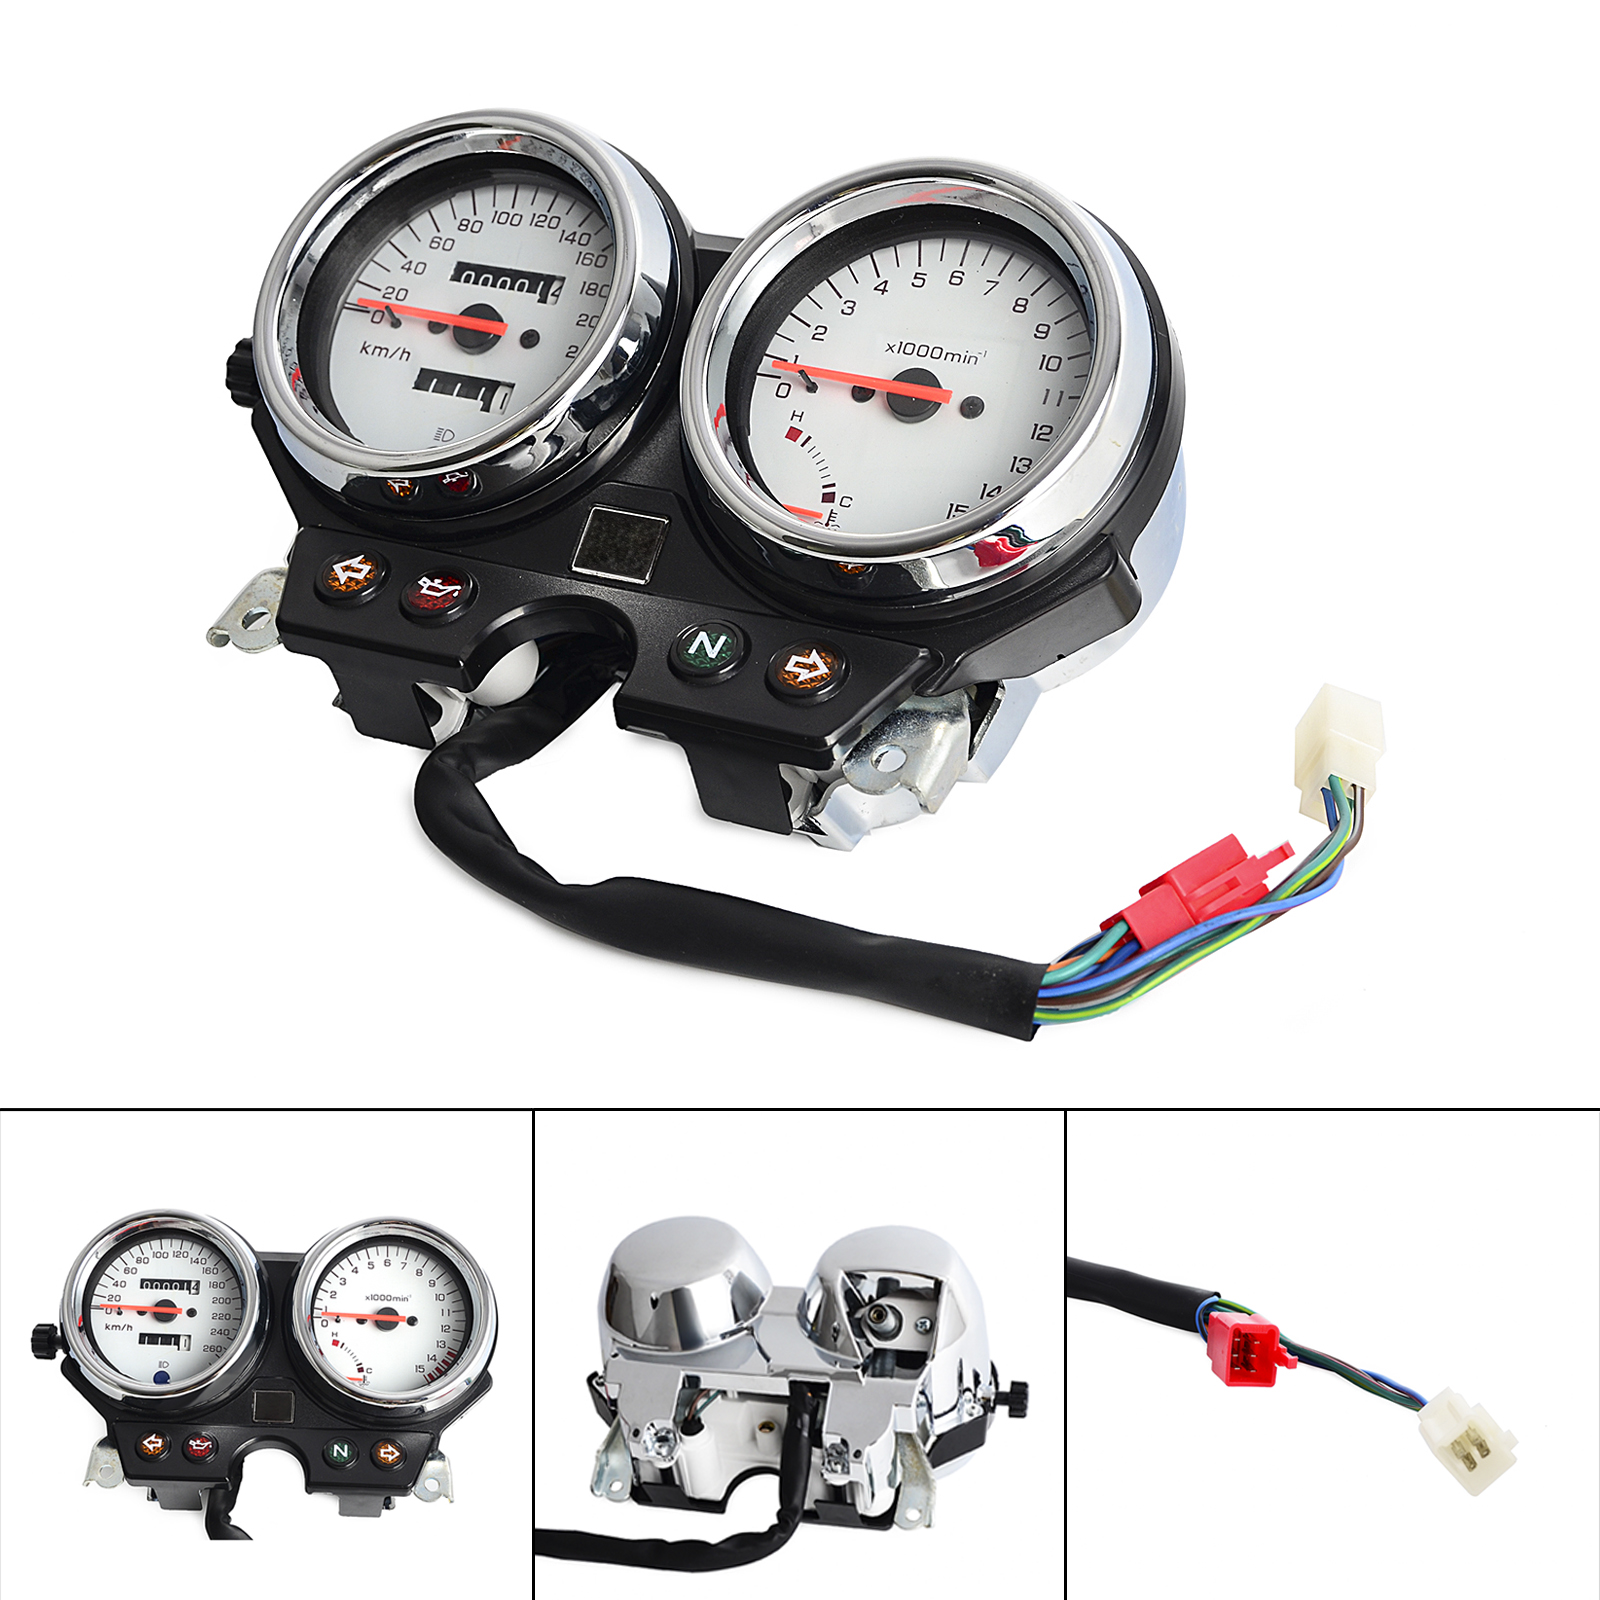 Canapé Modulable Hornet Best Top 10 Hornet Speedometer Brands And Get Free Shipping